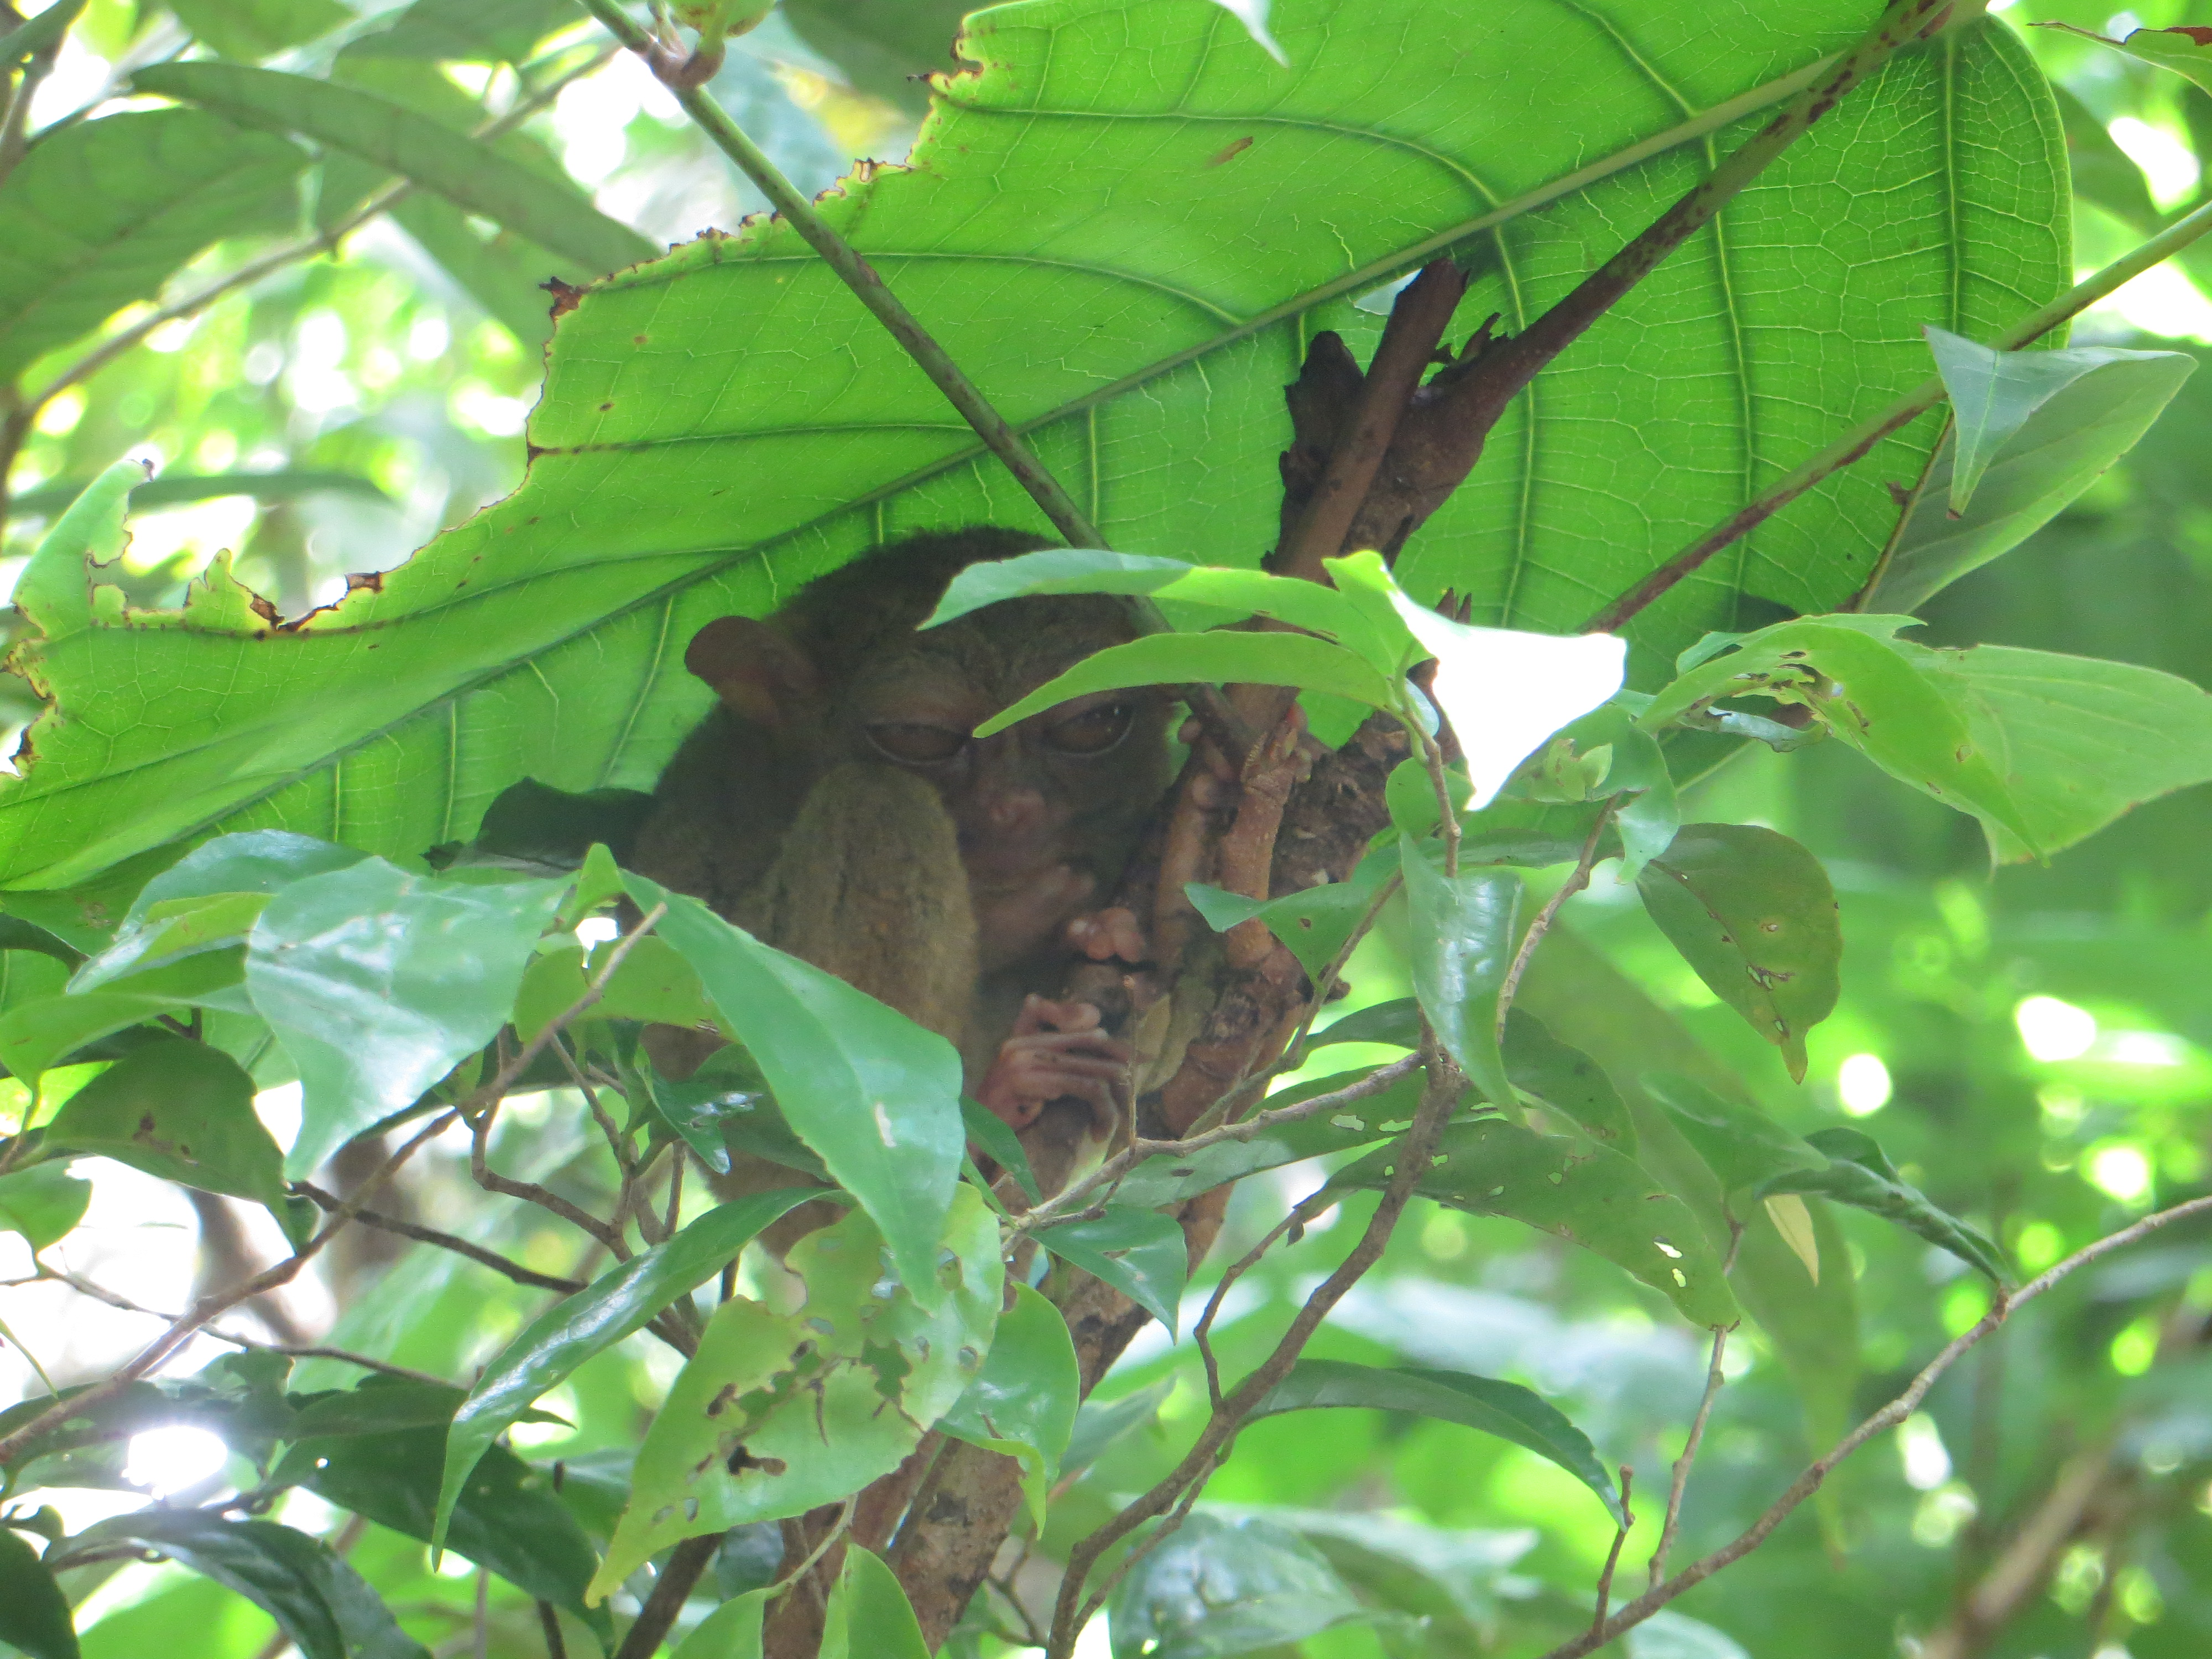 Tarsier- smallest monkeys in the world